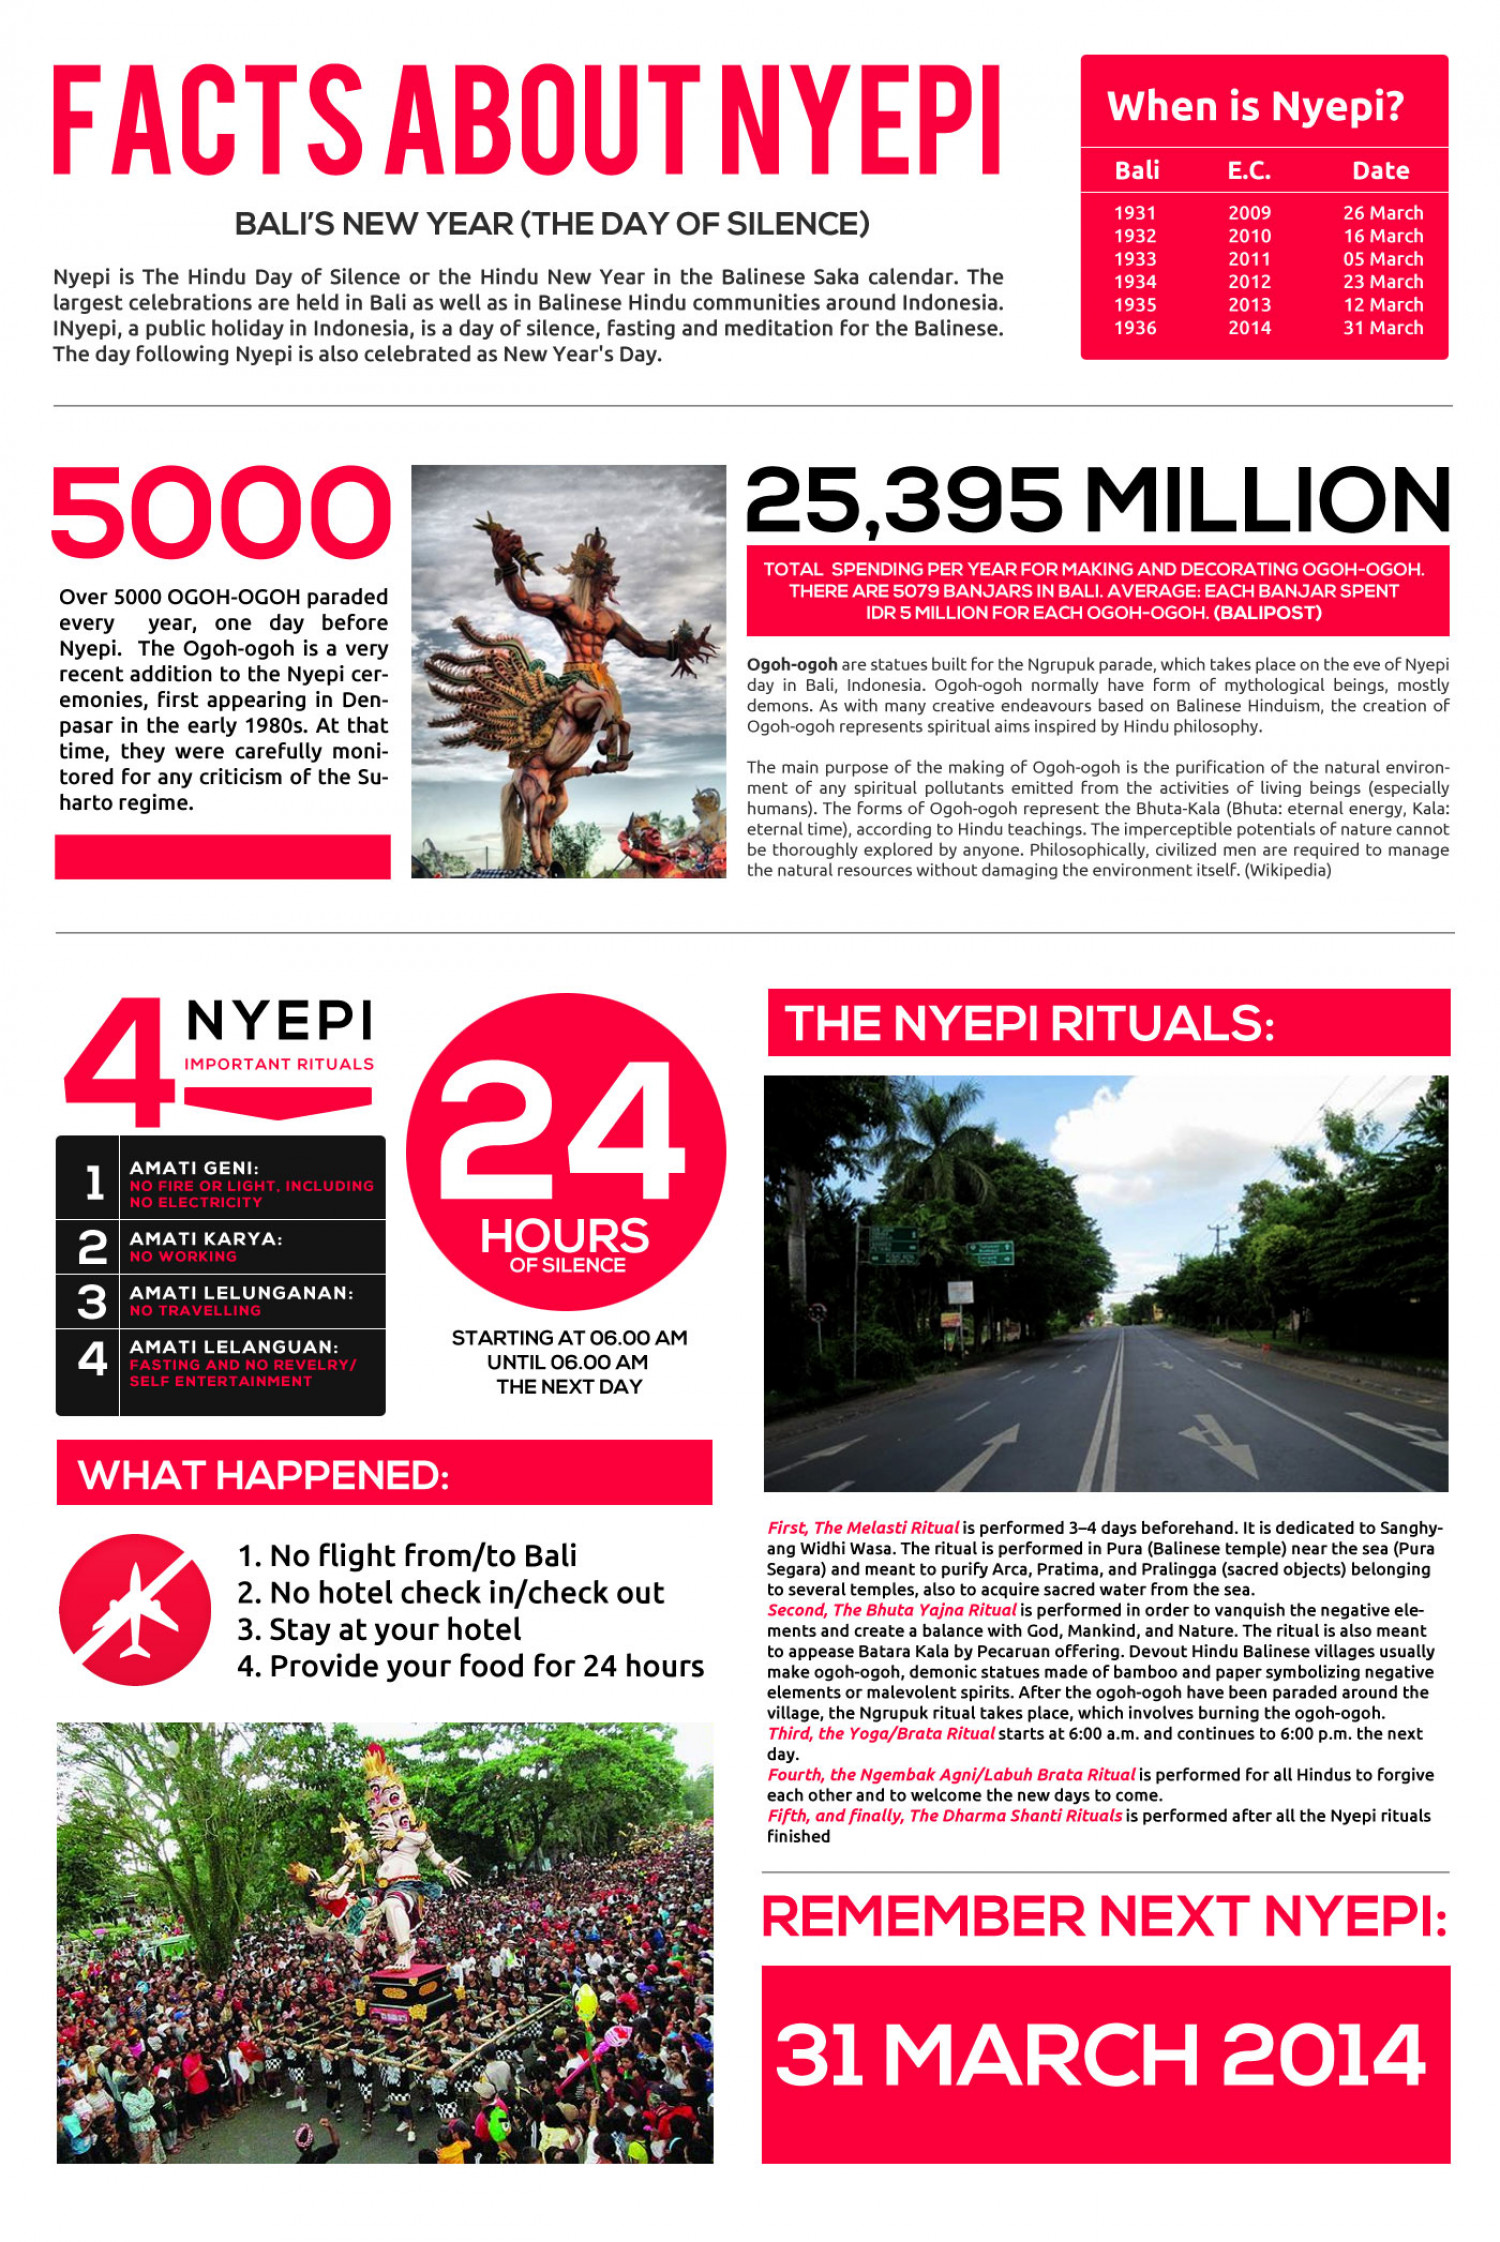 Facts About Nyepi Infographic